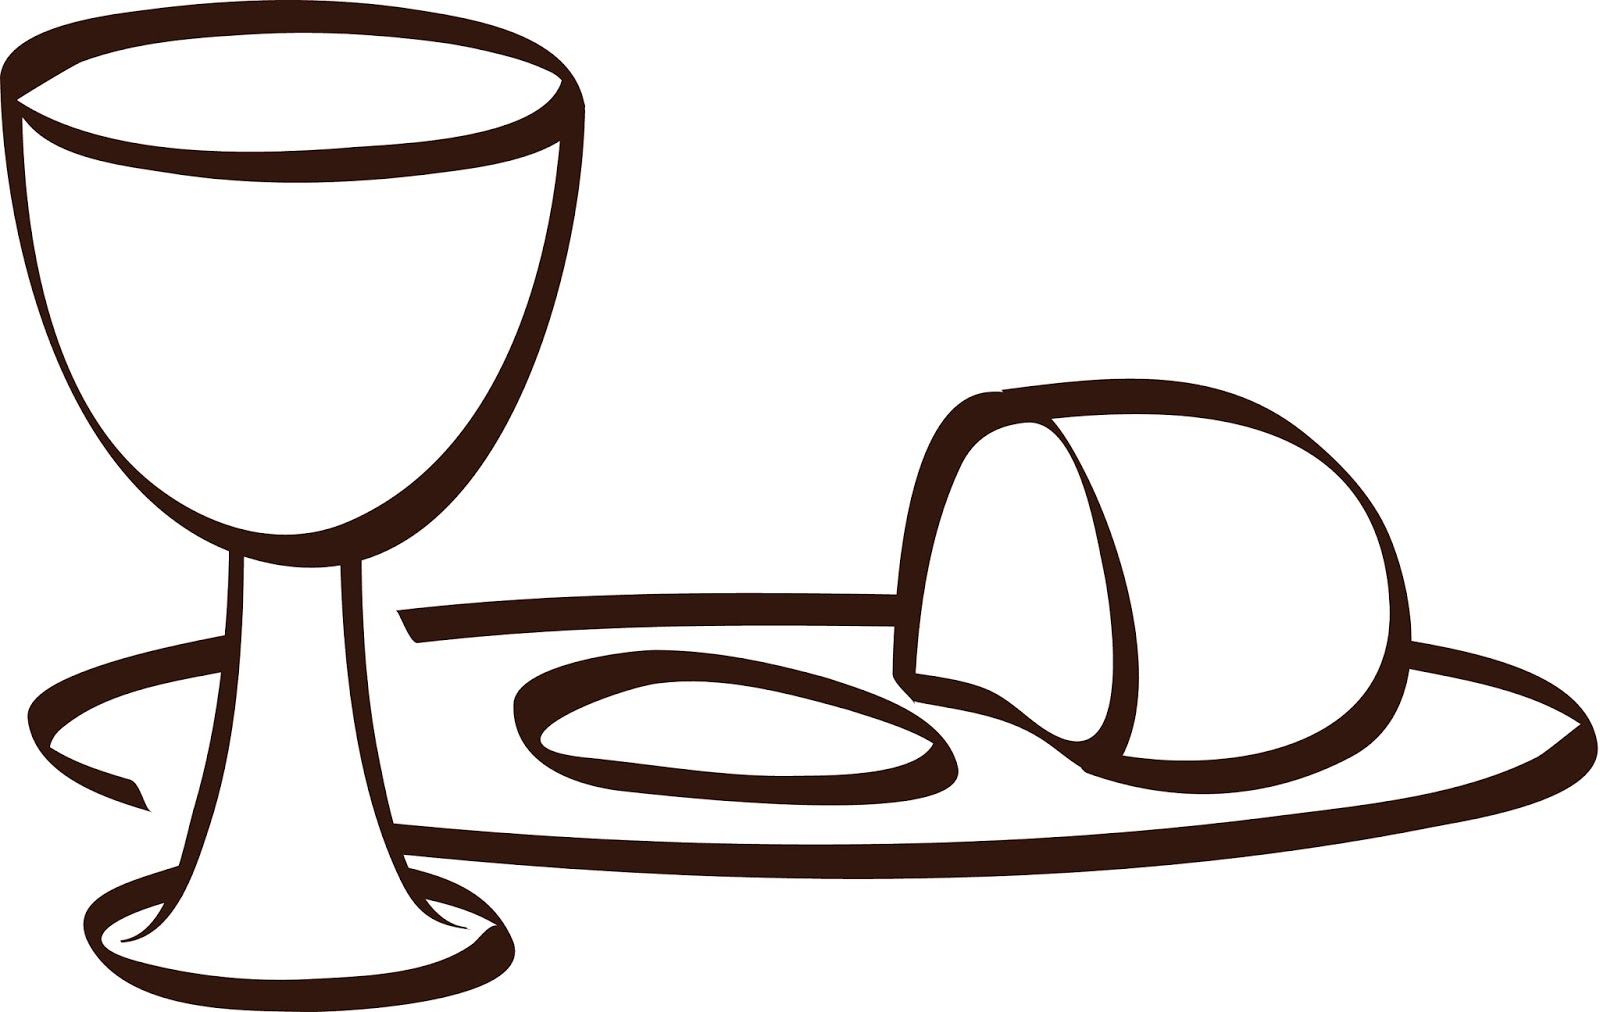 Bread and wine black and white clipart clip art download Cross Bread Cliparts - Cliparts Zone clip art download